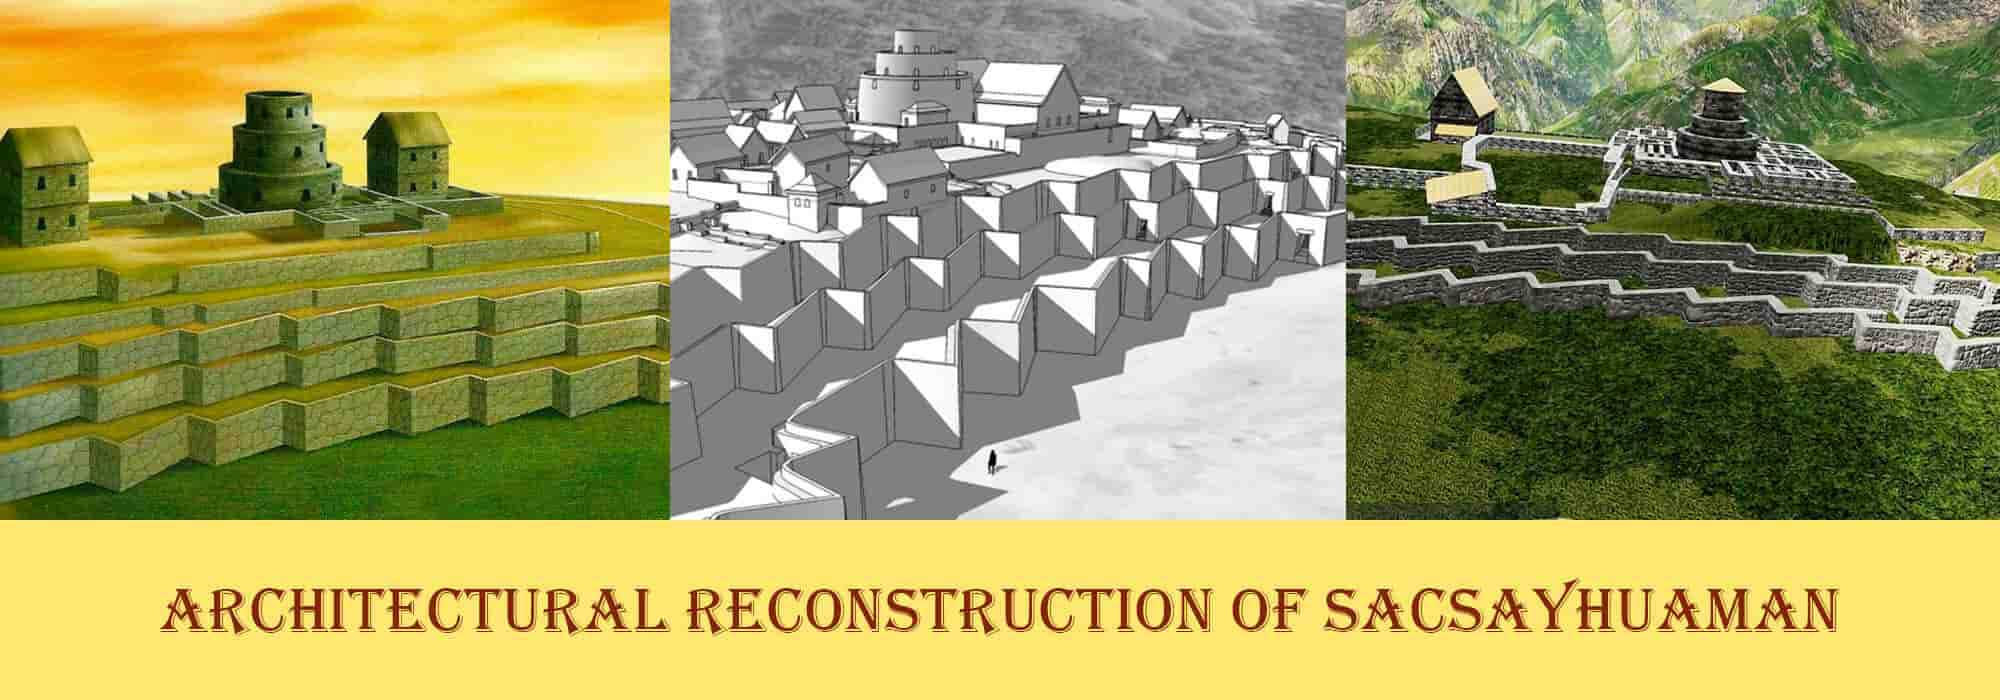 Architectural-Reconstruction-of-Sacsayhuaman